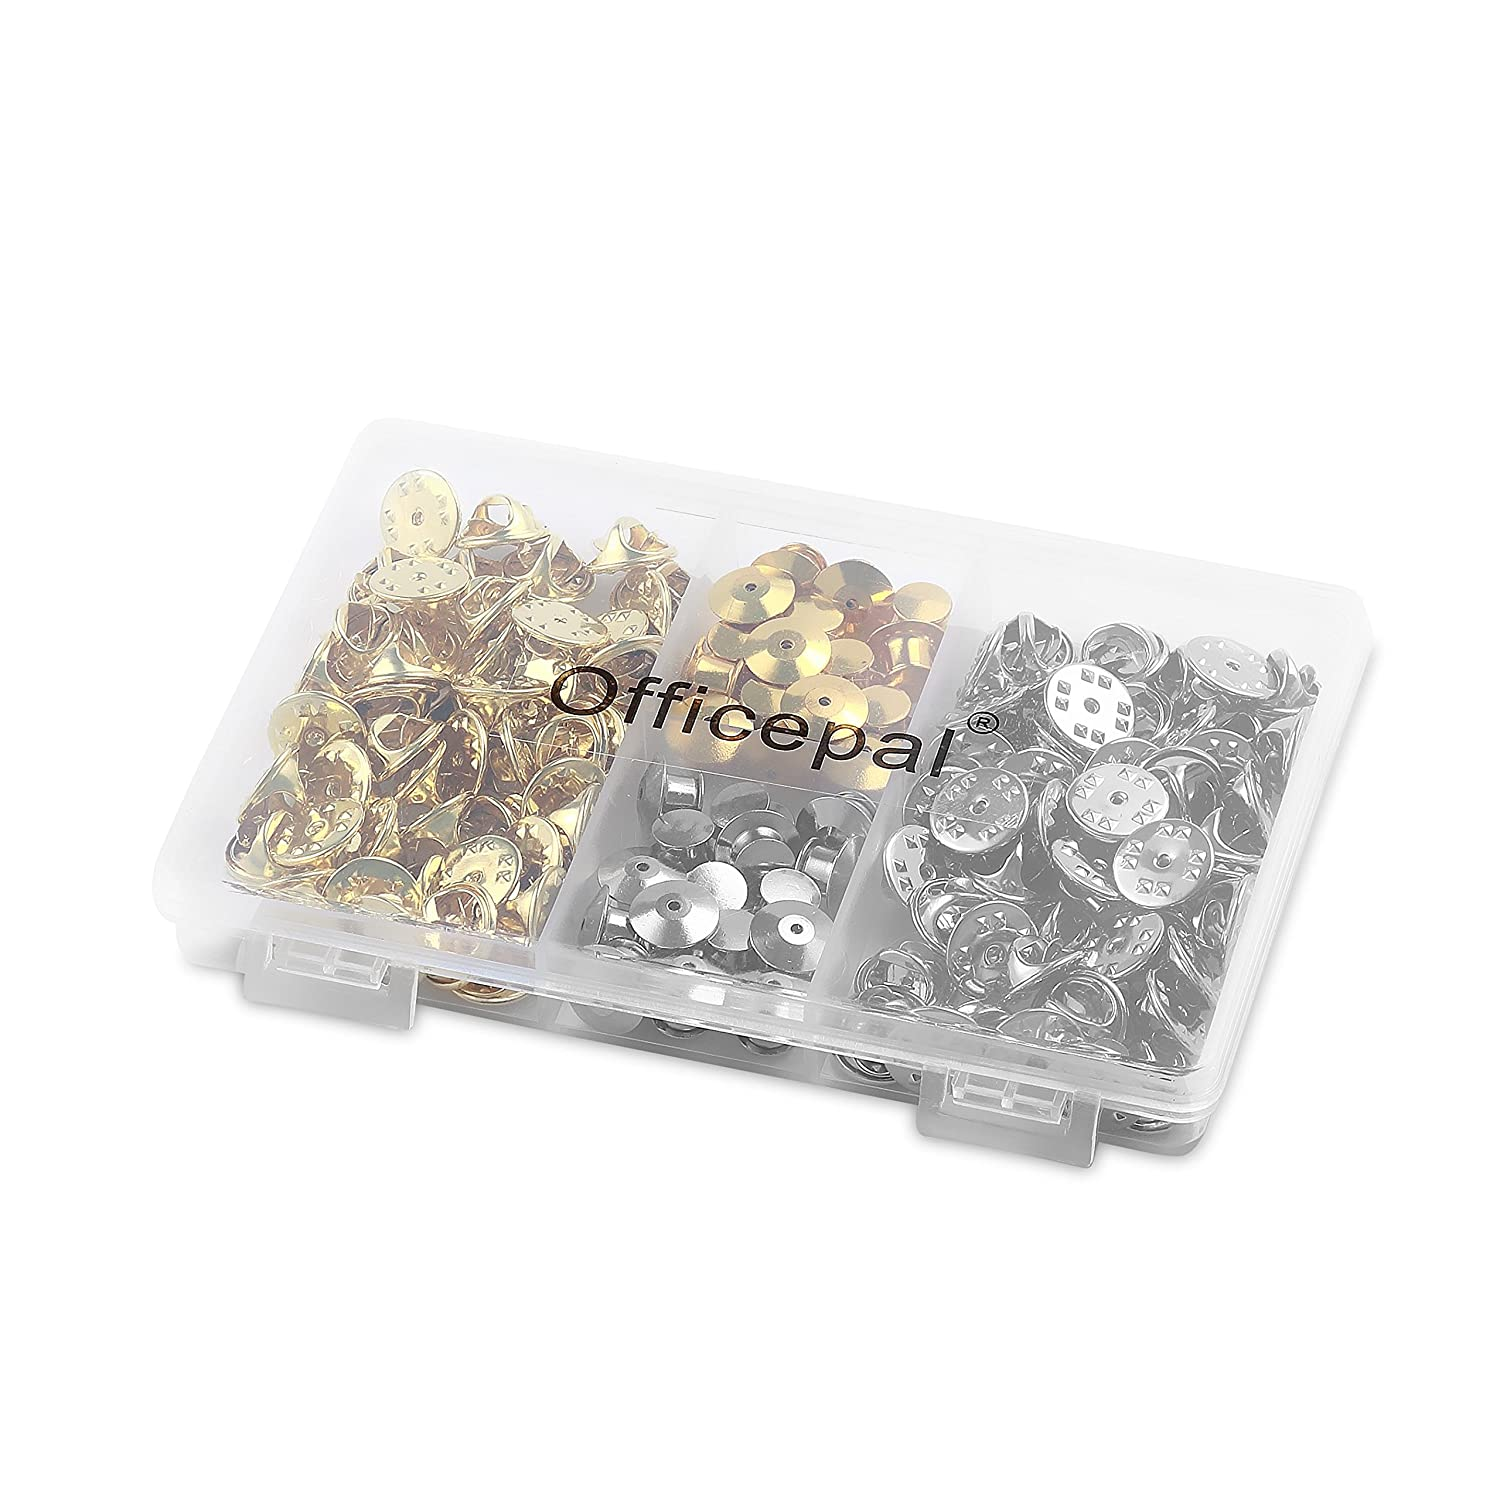 Officepal 130pc Bulk Lot Butterfly Clutch Pin Backs Set Silver /& Gold Locking Metal Clasp Fastener Keepers in Storage Case